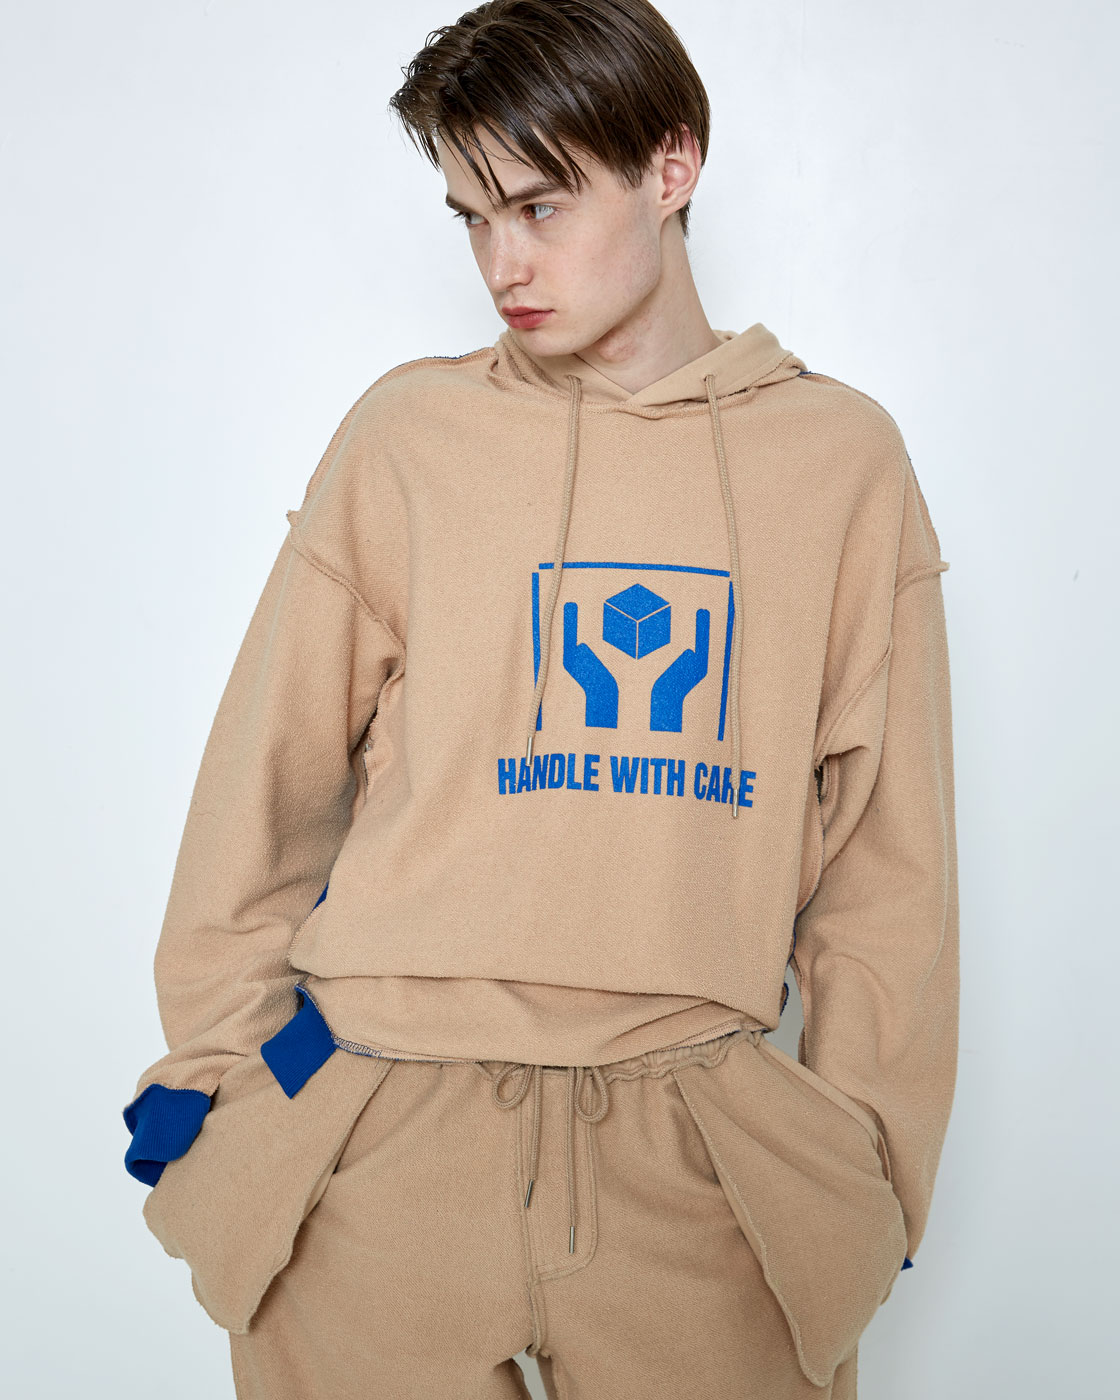 Beige/Blue 'Handle With Care' Inside-Out Hoodie